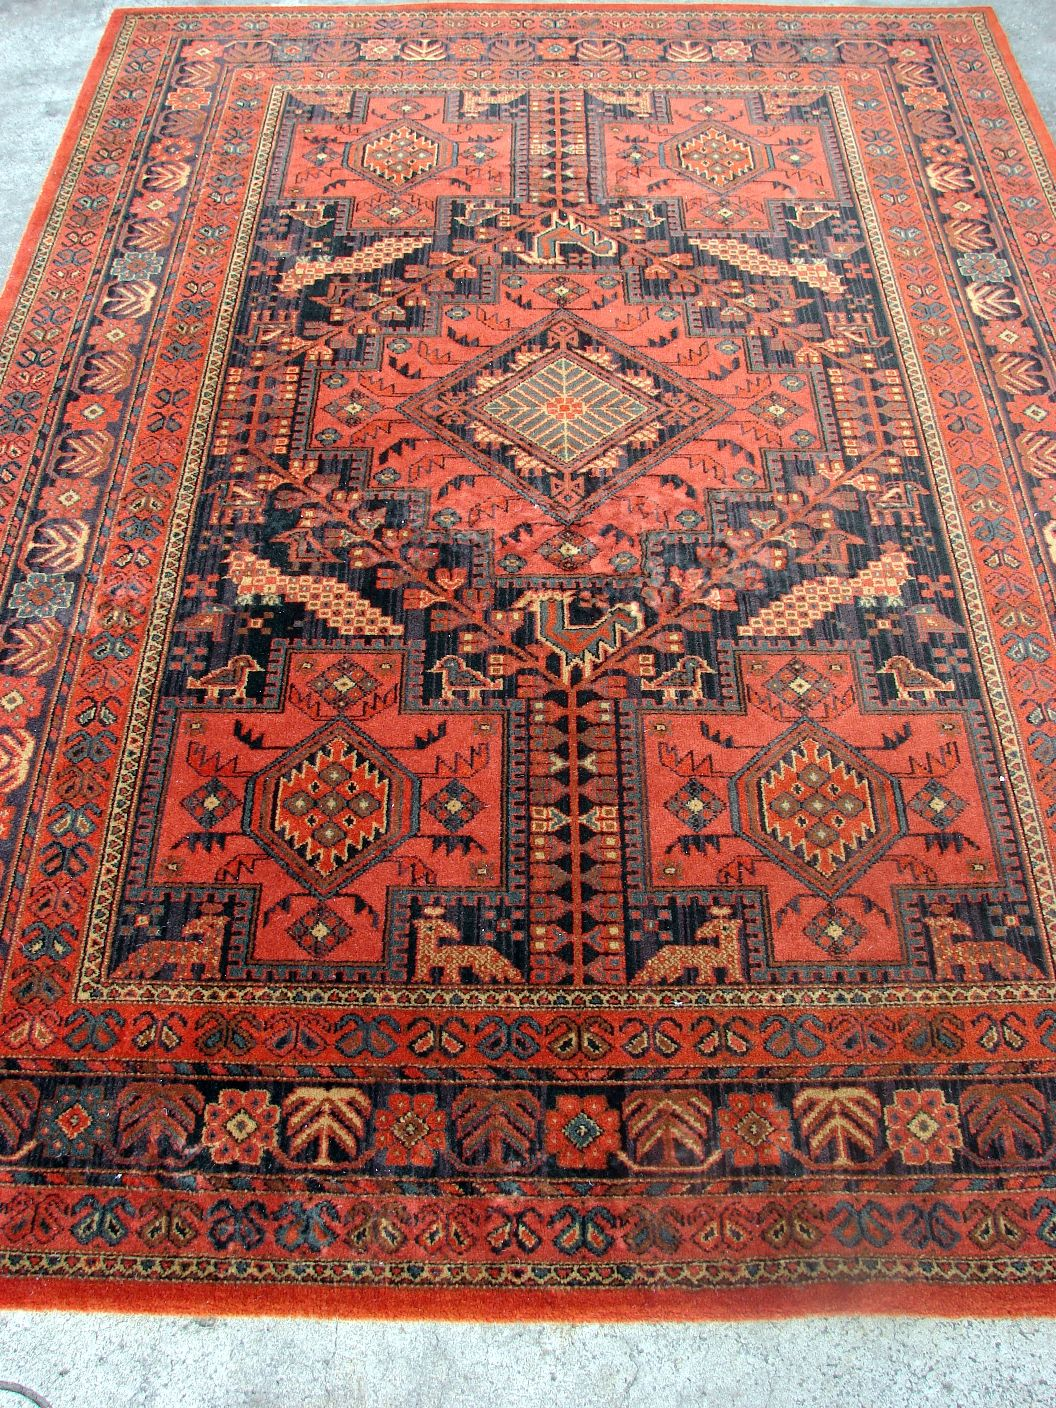 A Large Belgium By Louis De Poortere Mossoul Rug